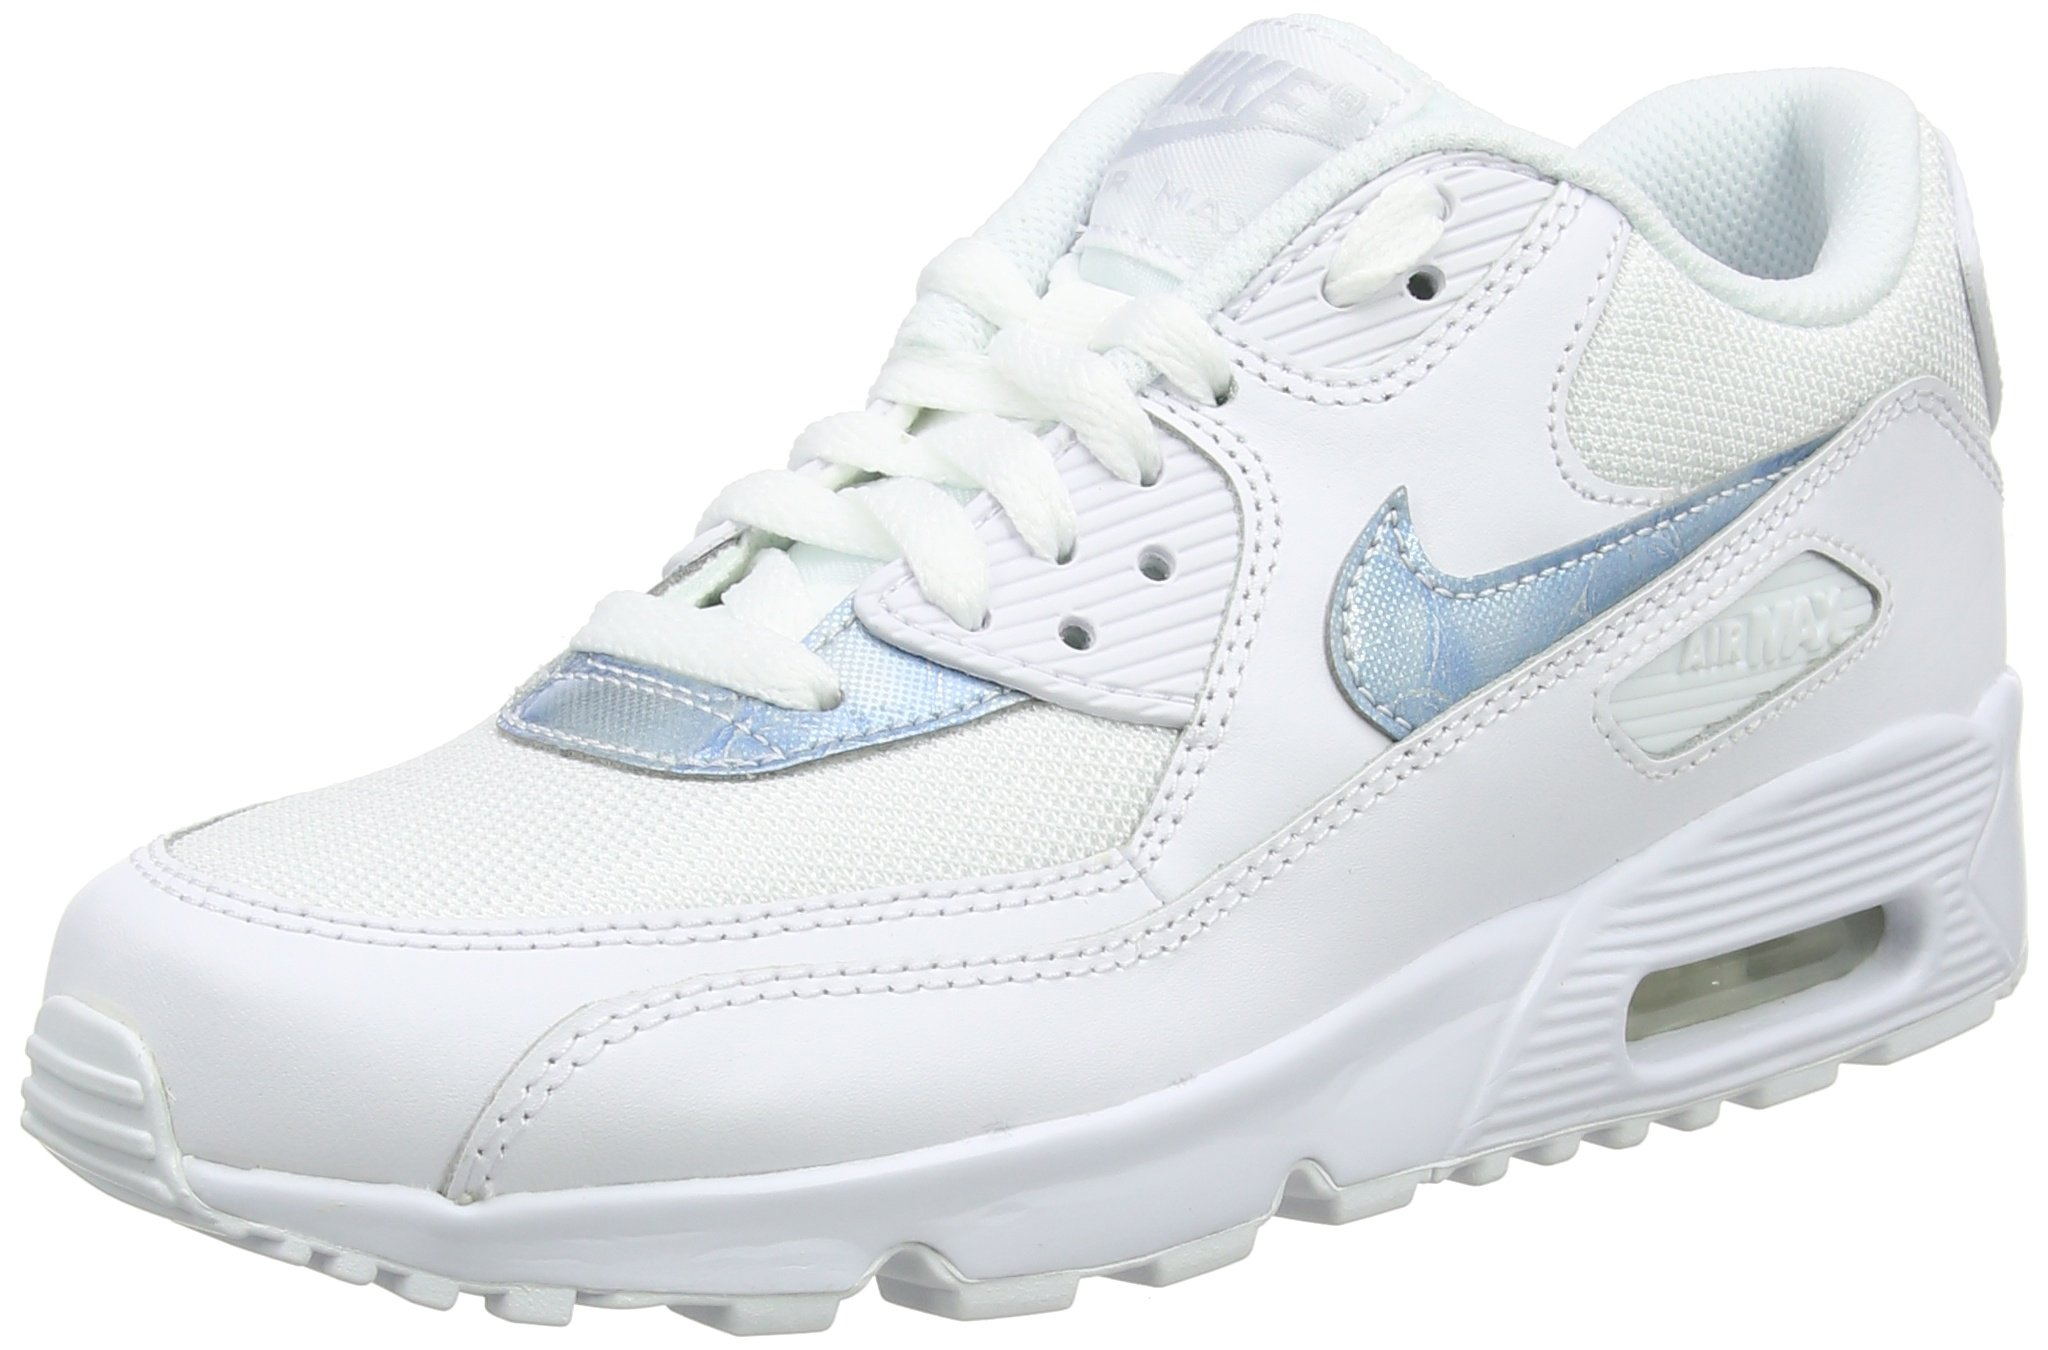 971d712719fd Galleon - NIKE Air Max 90 Mesh GS Running Trainers 833418 Sneakers Shoes  (UK 4.5 Us 5Y EU 37.5